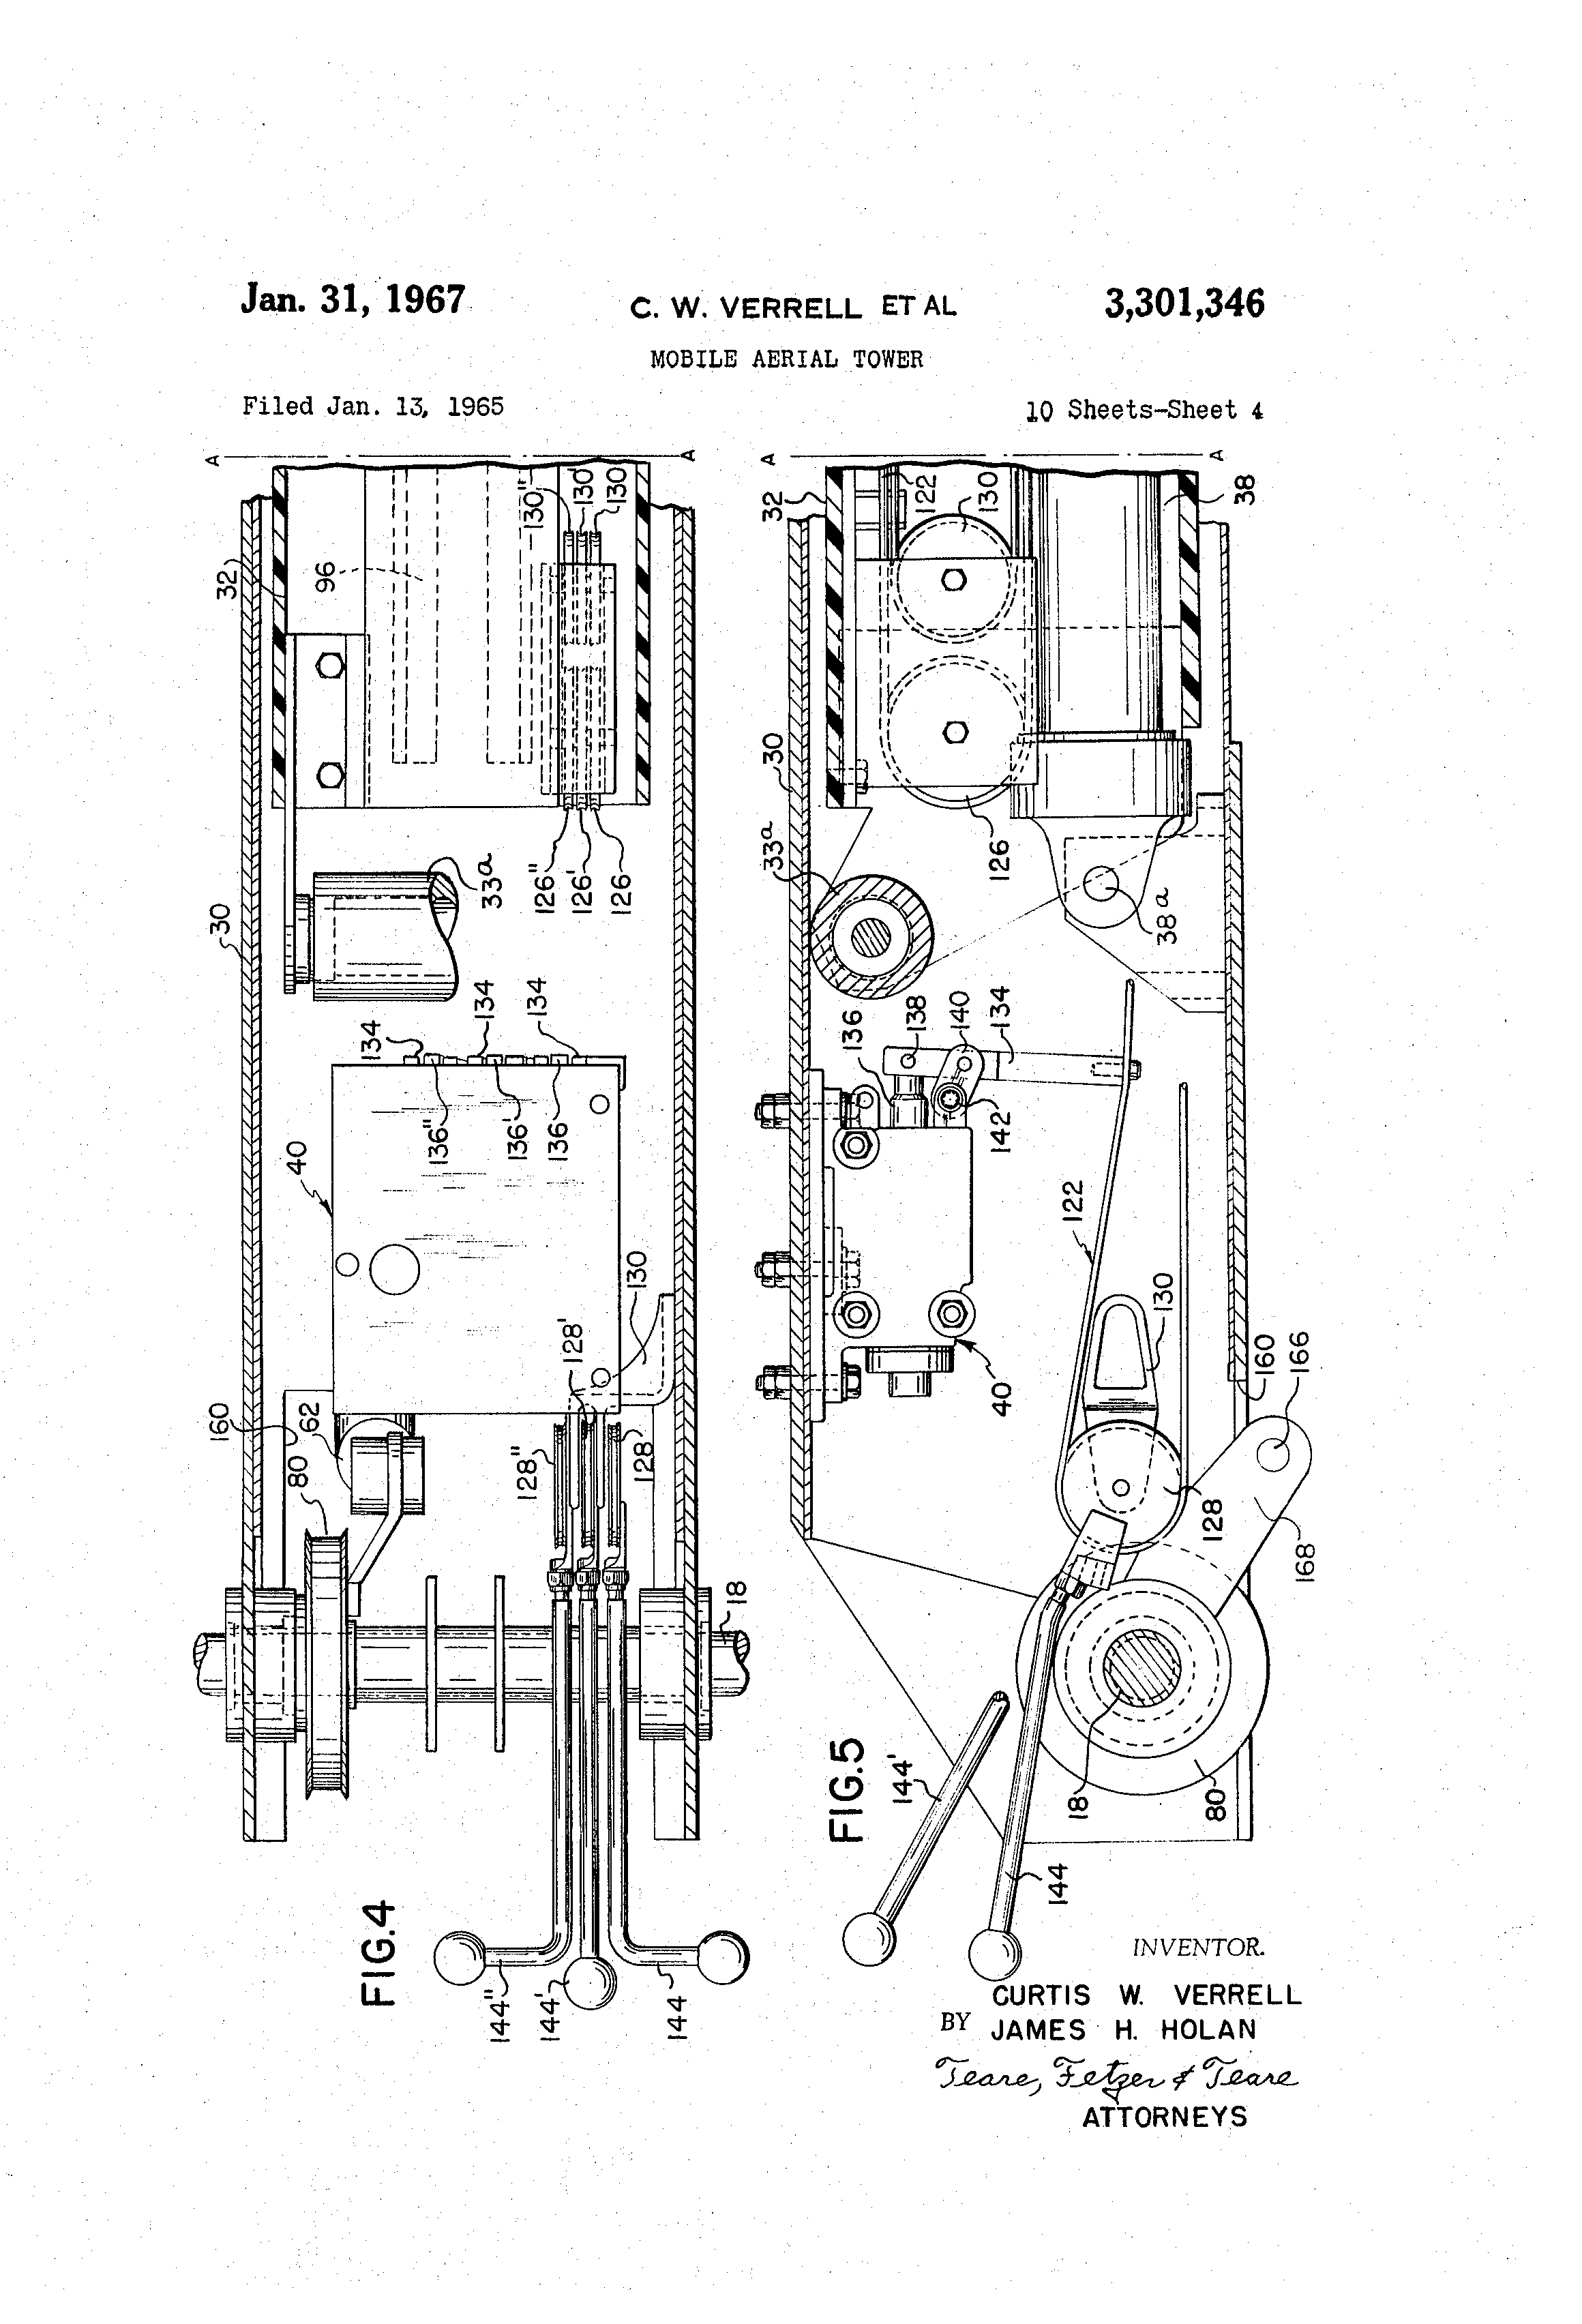 upright scissor lift wiring diagram upright image altec boom wiring diagram altec discover your wiring diagram on upright scissor lift wiring diagram